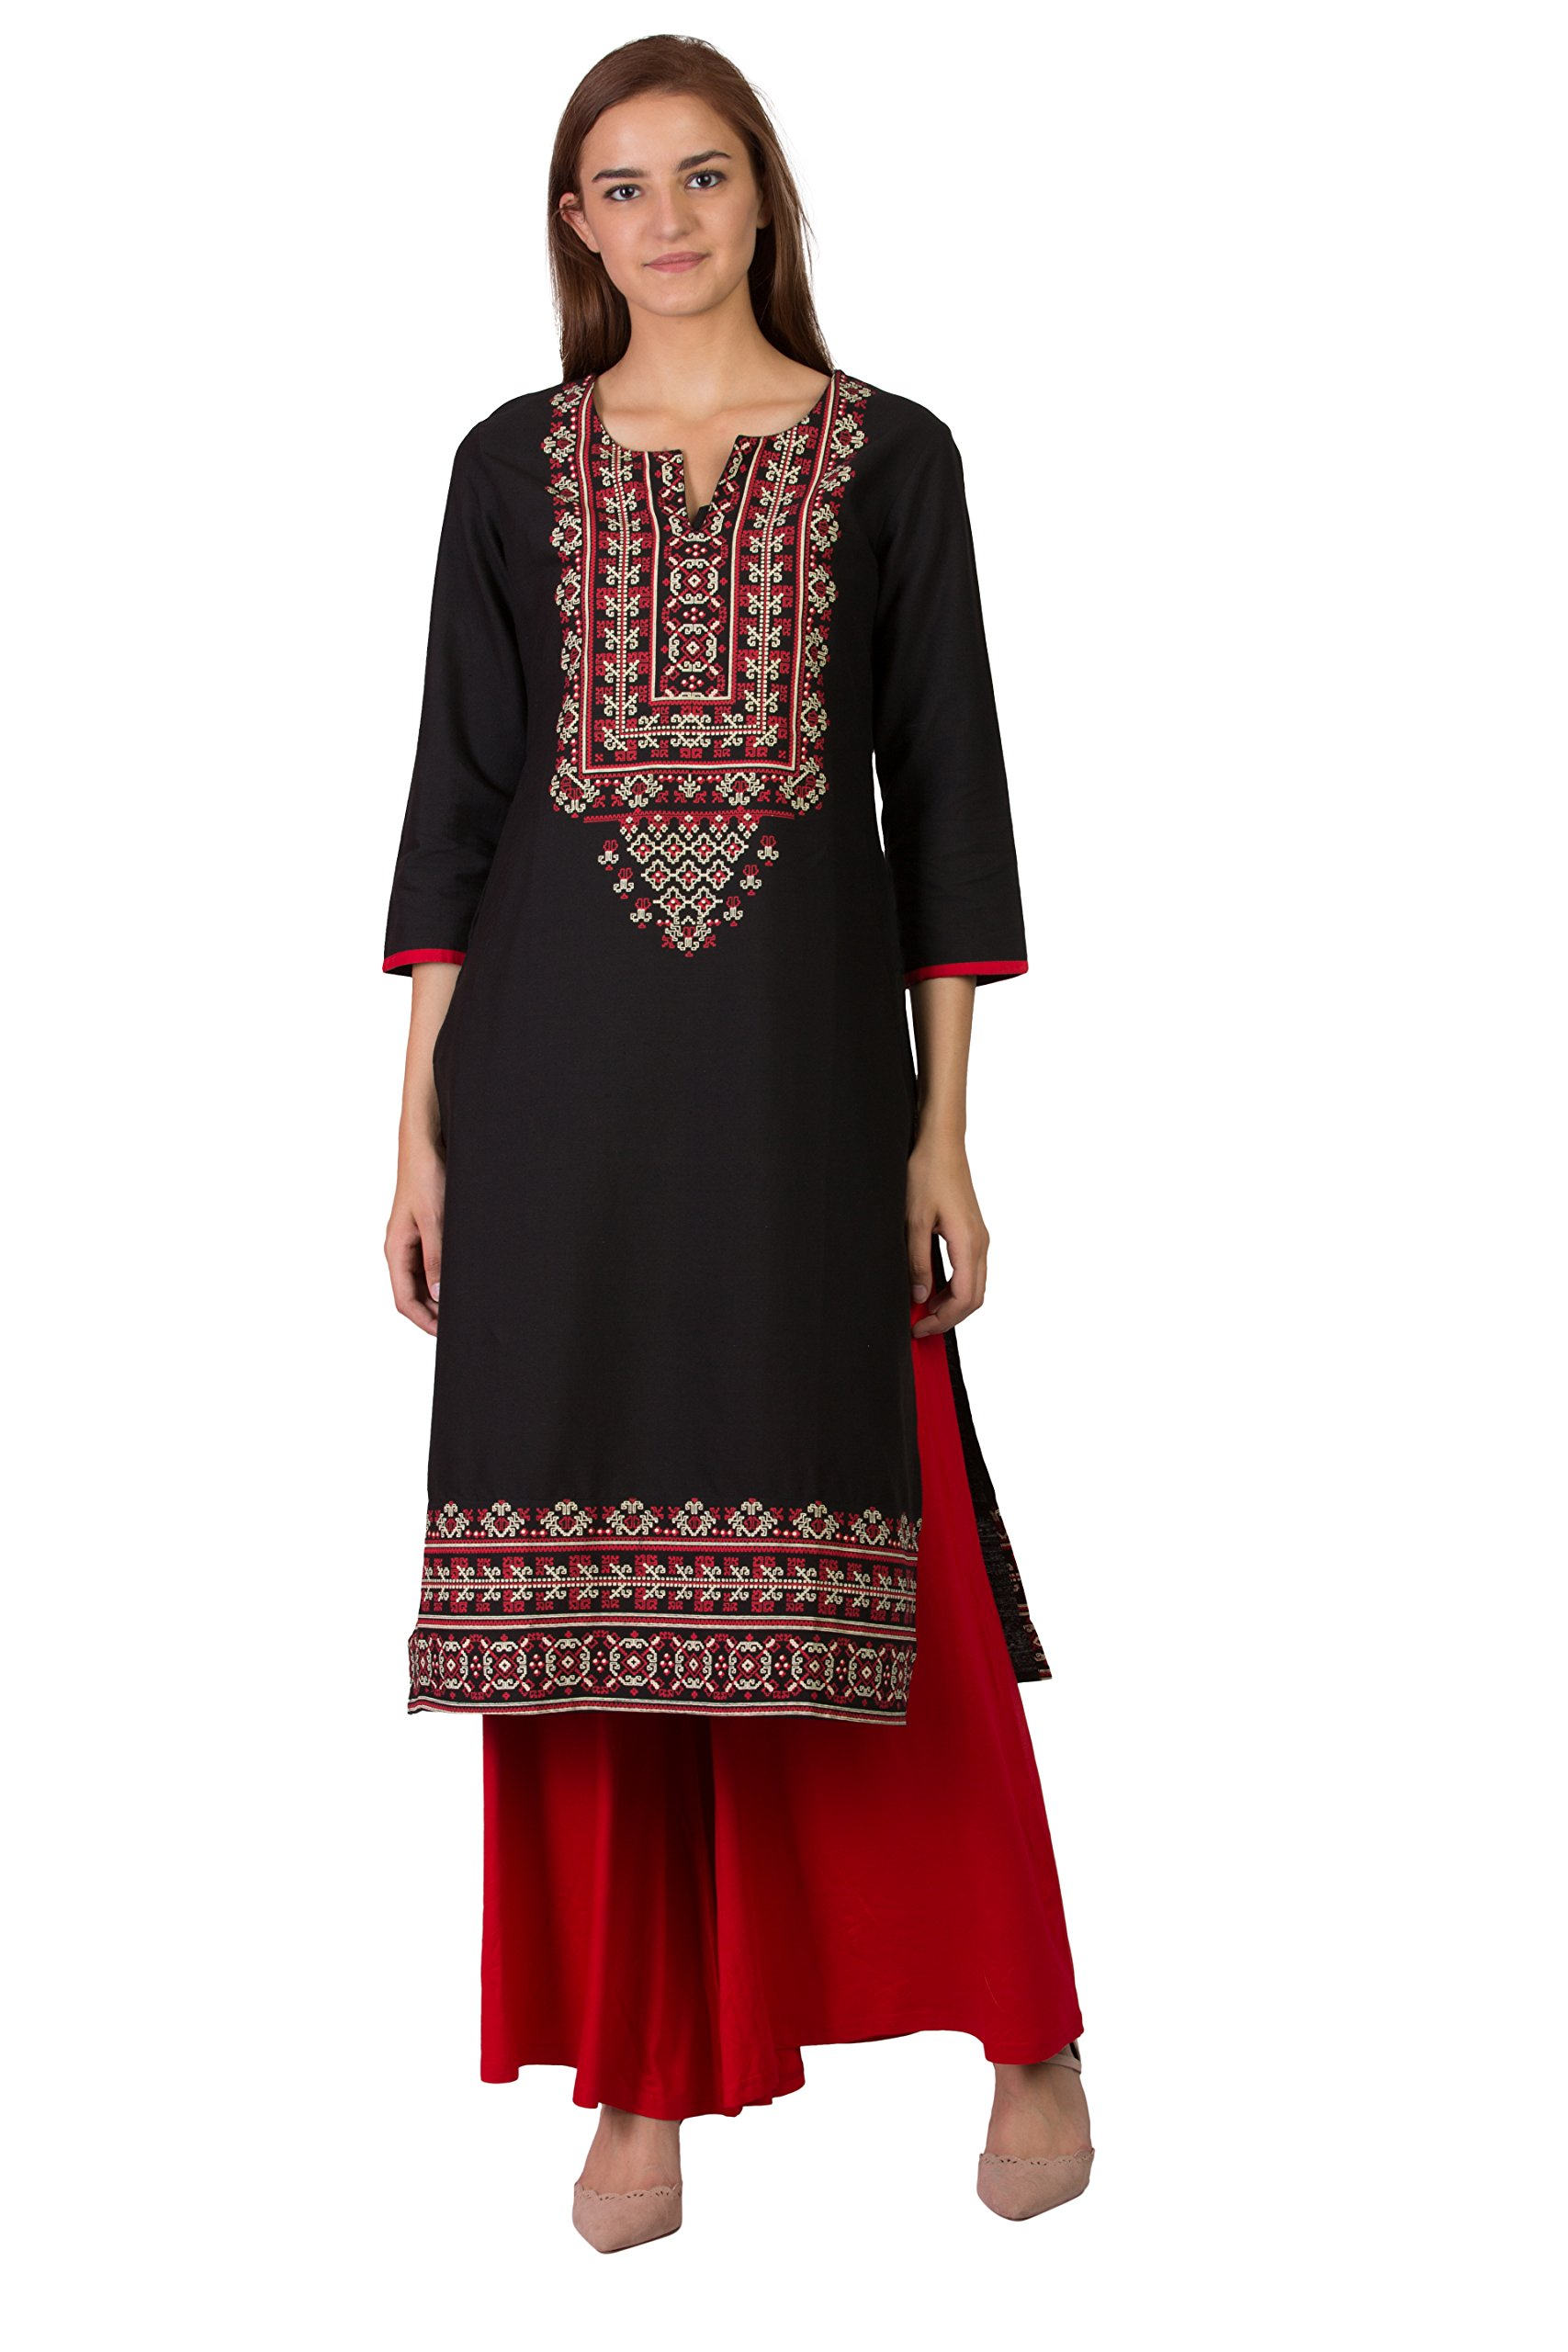 SABHYATA Women's Kurta Tunic Partywear Dress Black Kurti Tops for Women